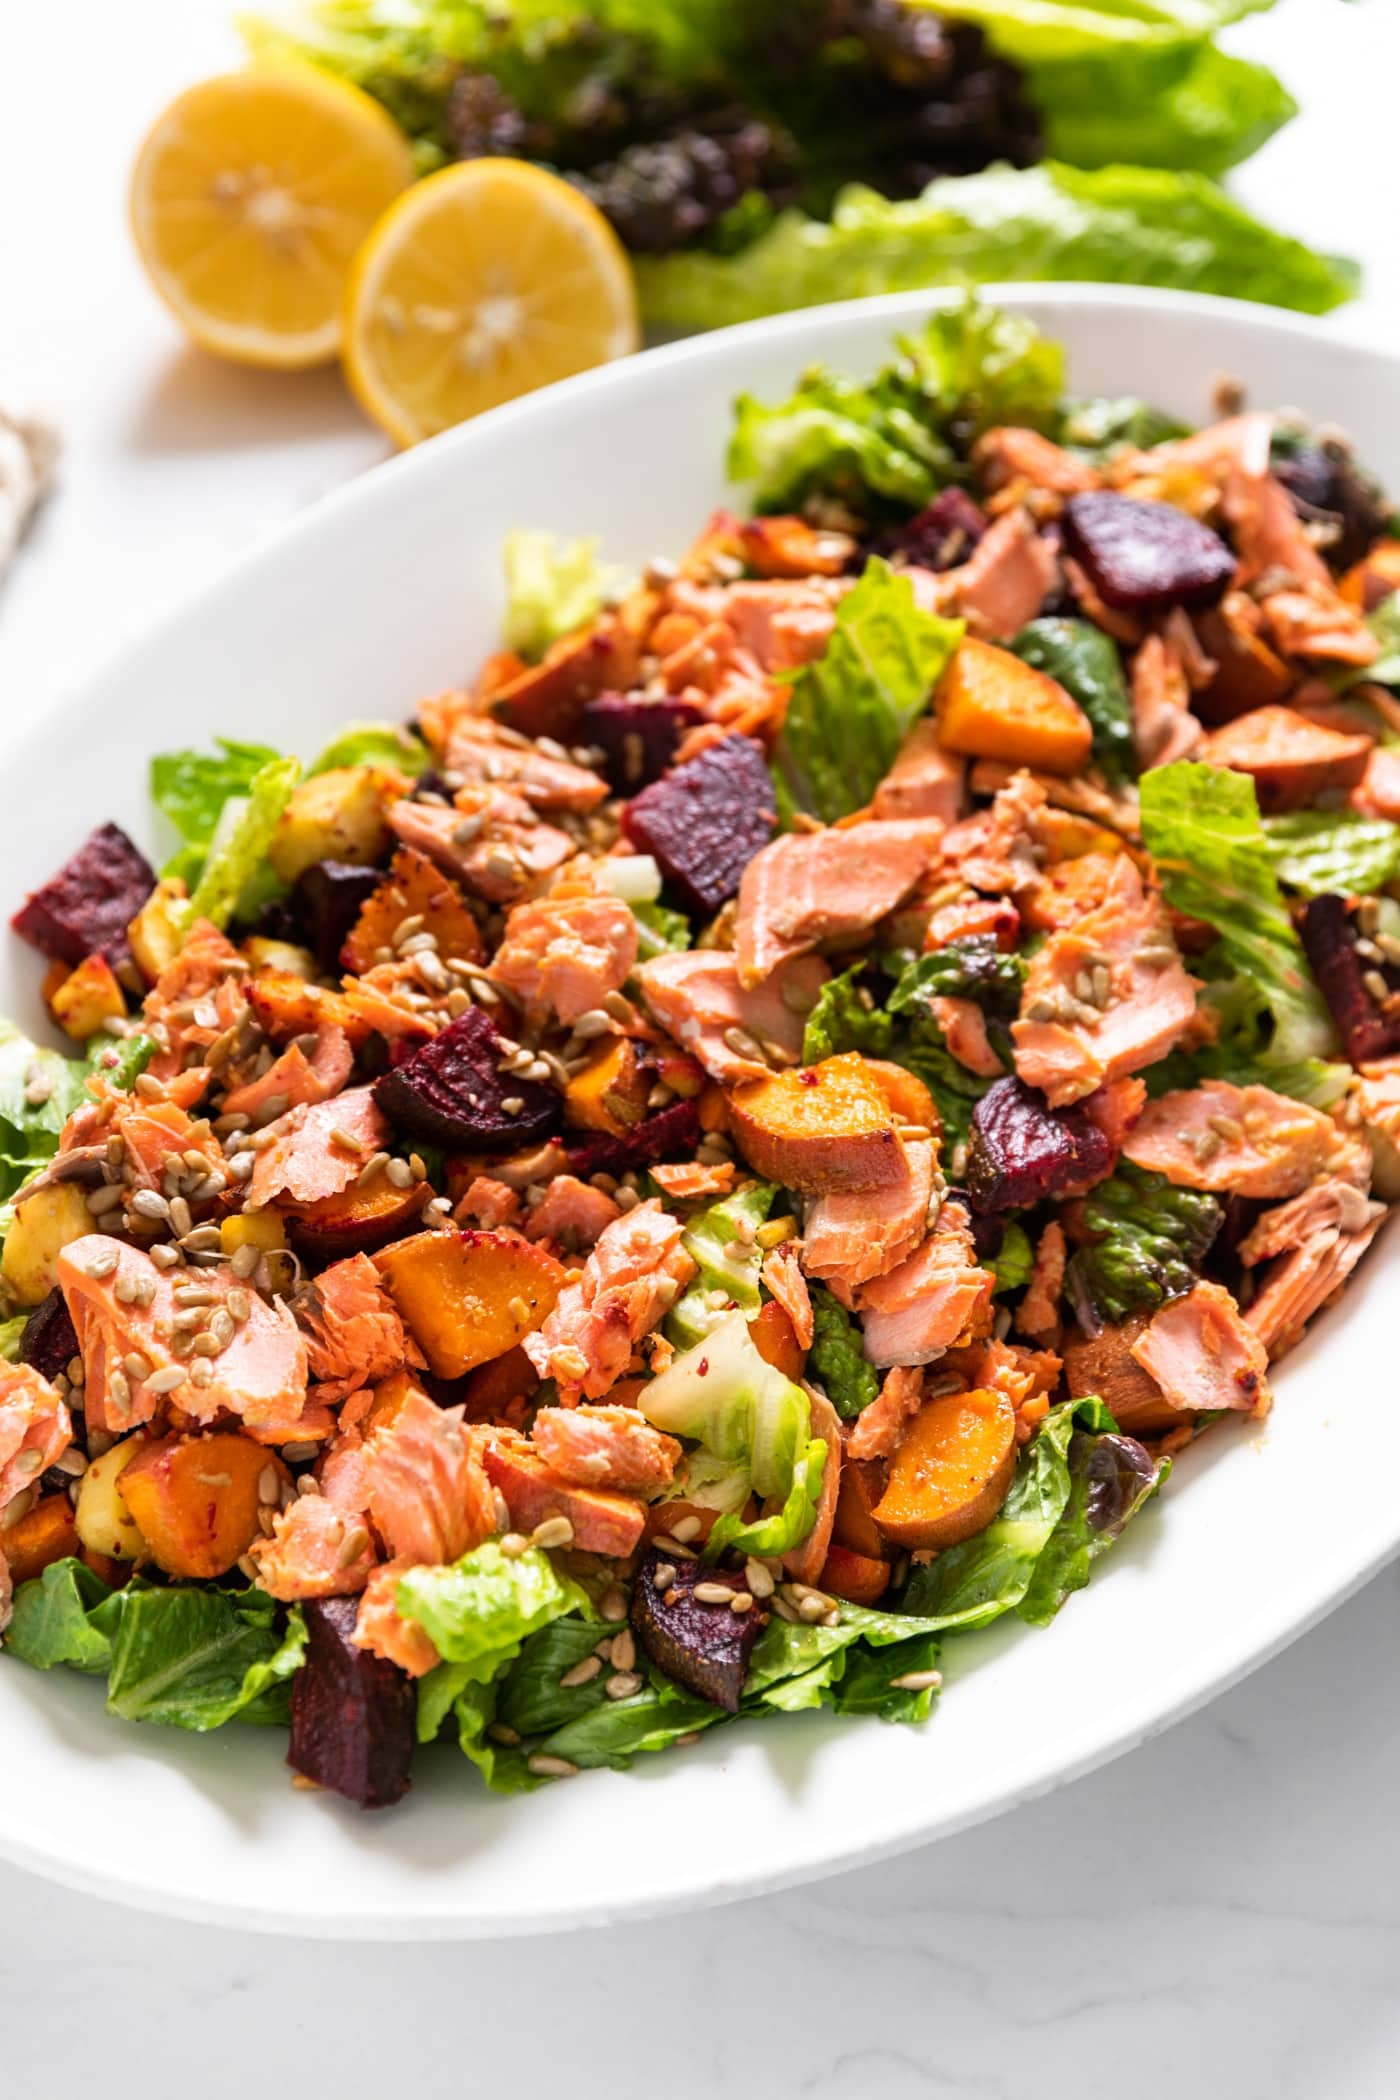 Large white platter sitting on white countertop filled with salad greens topped with beets and carrots and sweet potatoes and salmon with cut lemons in background